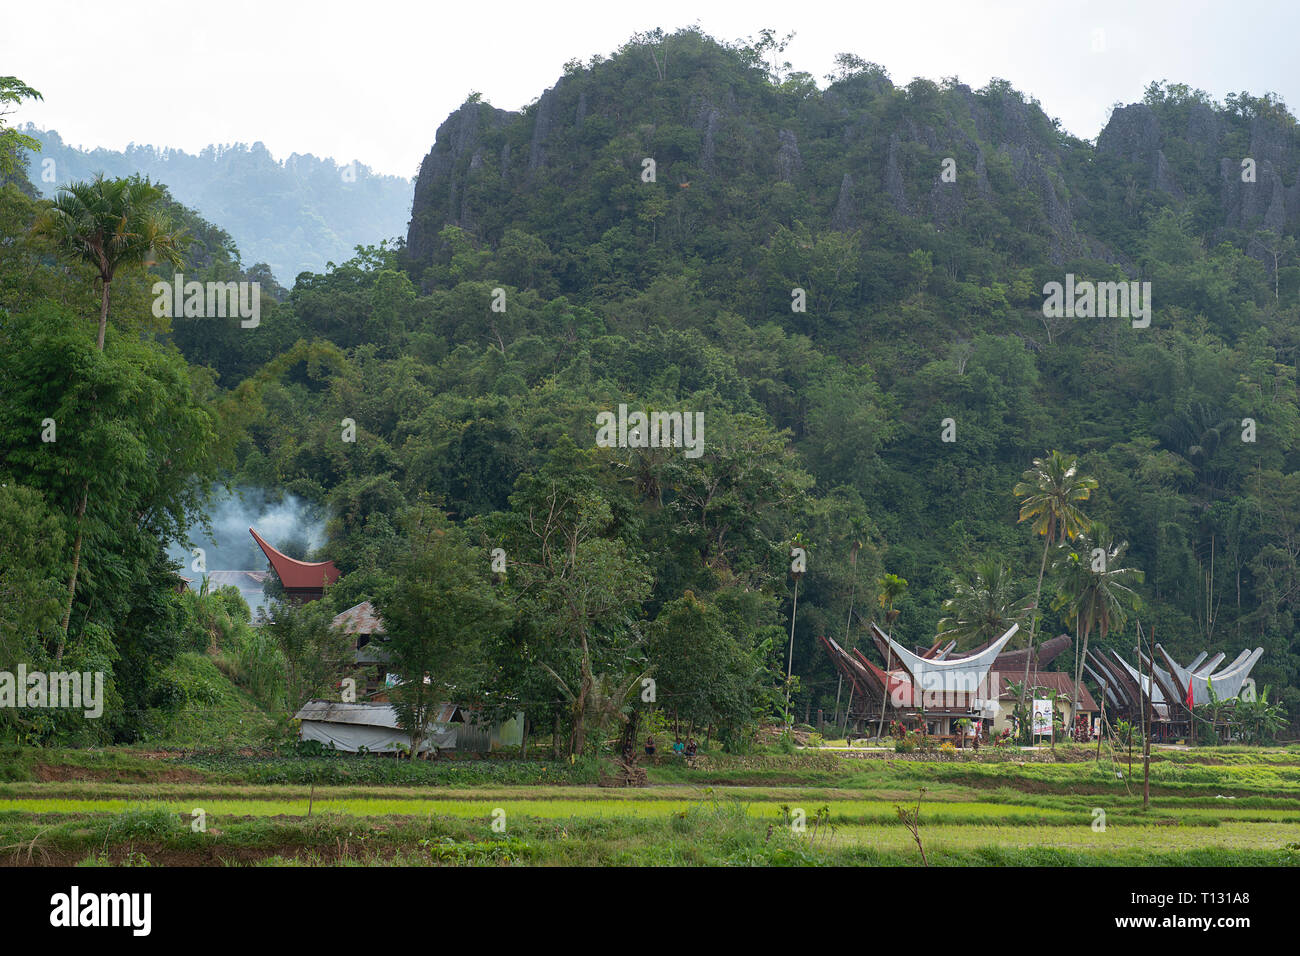 Tongkonan houses, traditional Torajan buildings, Tana Toraja is the traditional ancestral house of the Torajan people, in South Sulawesi,Indonesia. To - Stock Image